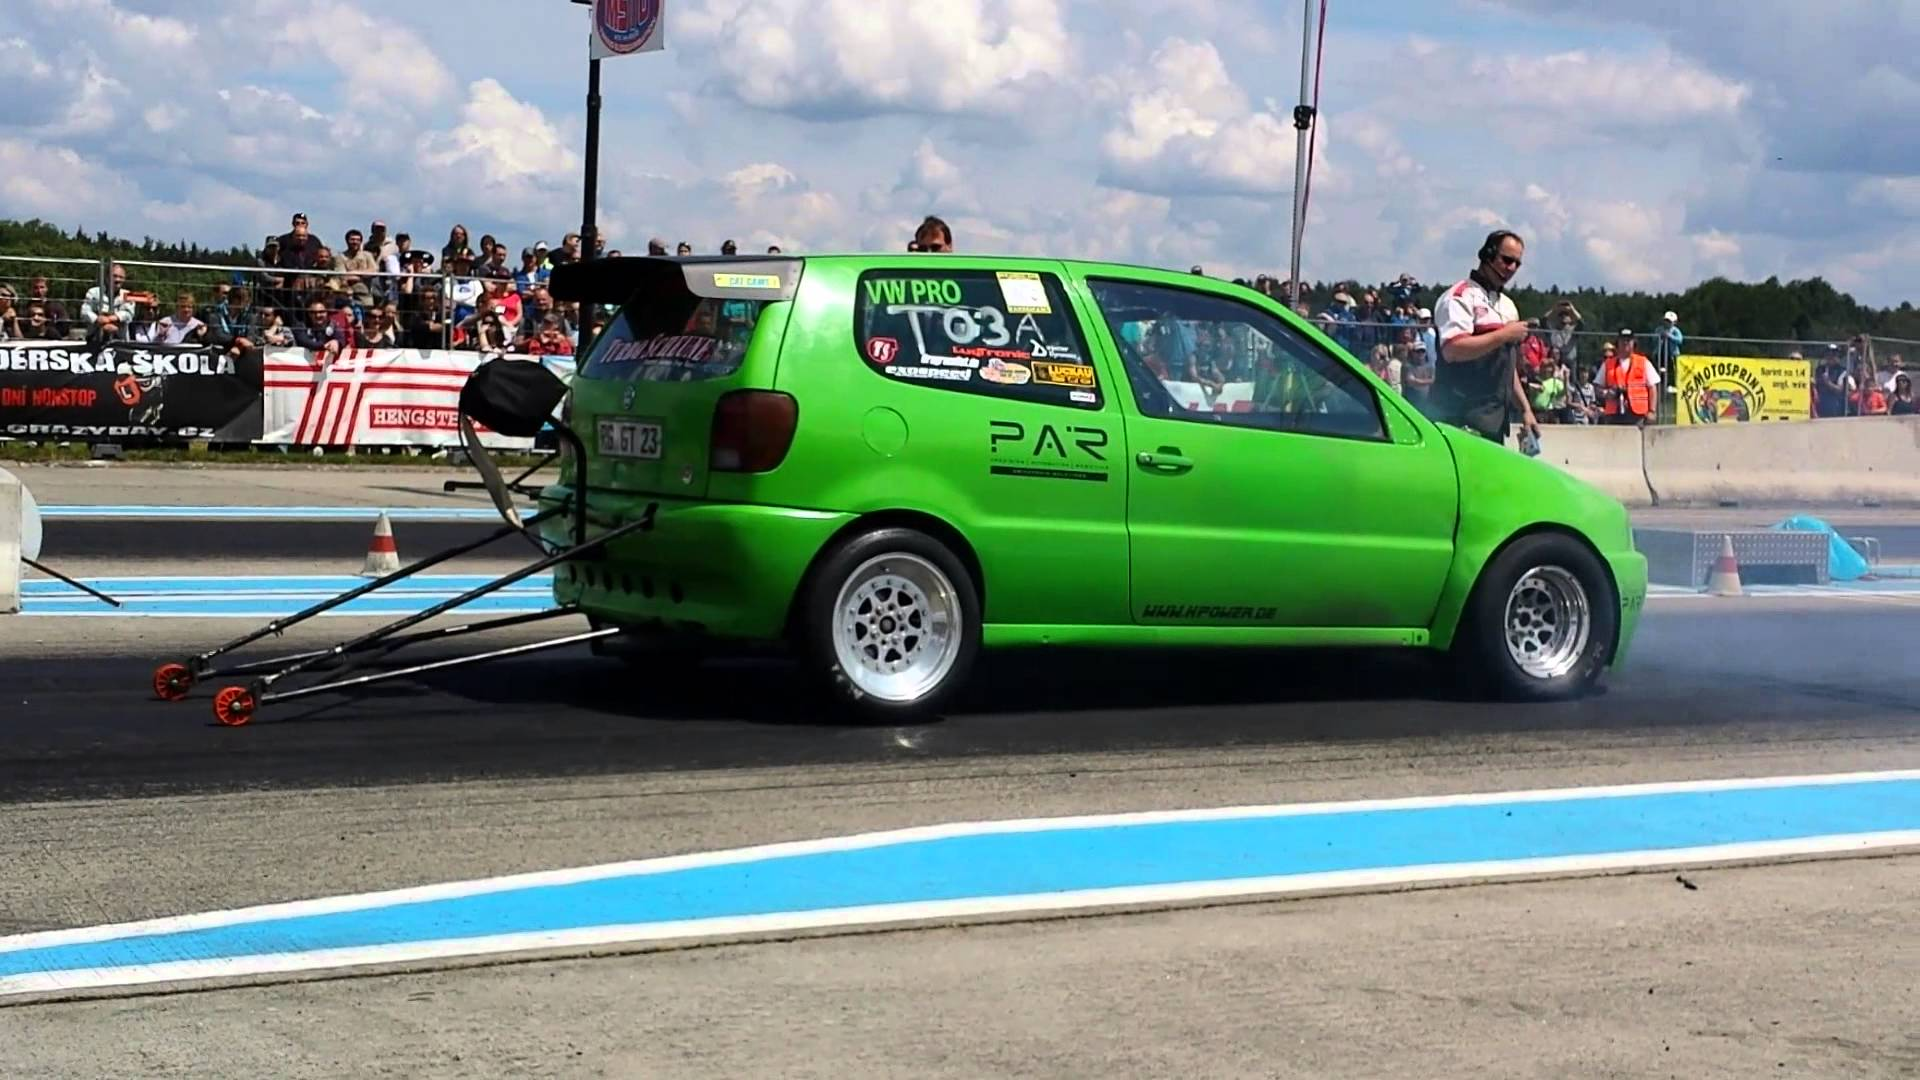 Vw Polo Vr6 Turbo 1000 Hp H Power Turbo And Stance